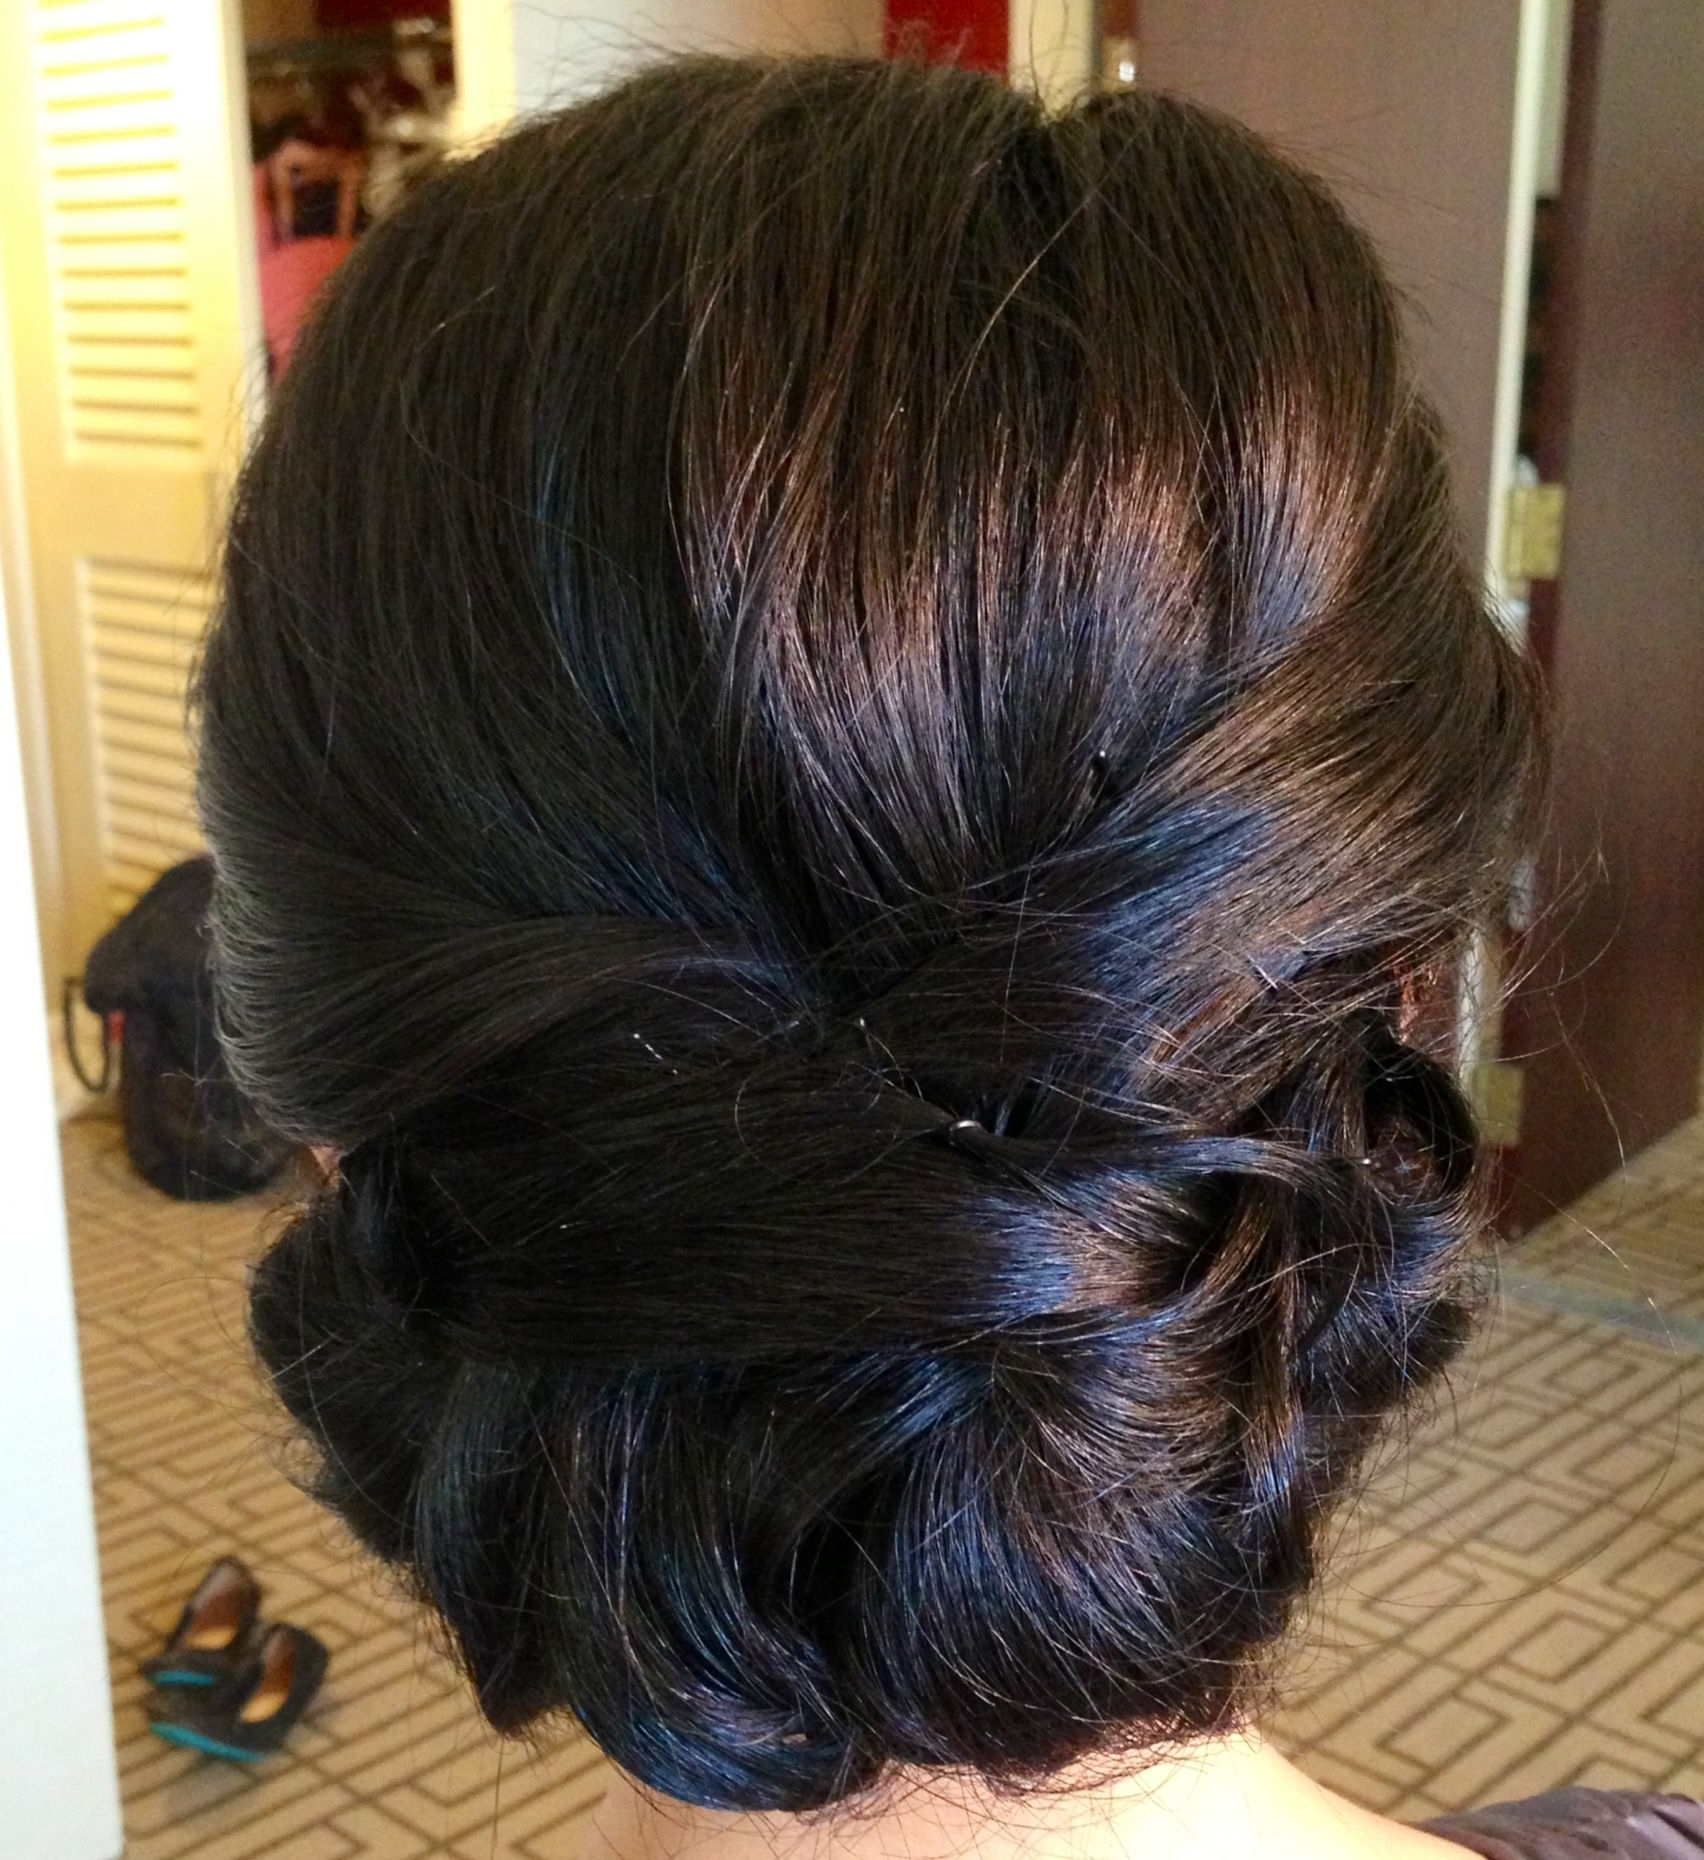 16 Fascinating Asian Hairstyles | Asian Bridal Hair, Classic Updo With Regard To Chignon Updo Hairstyles (View 3 of 15)